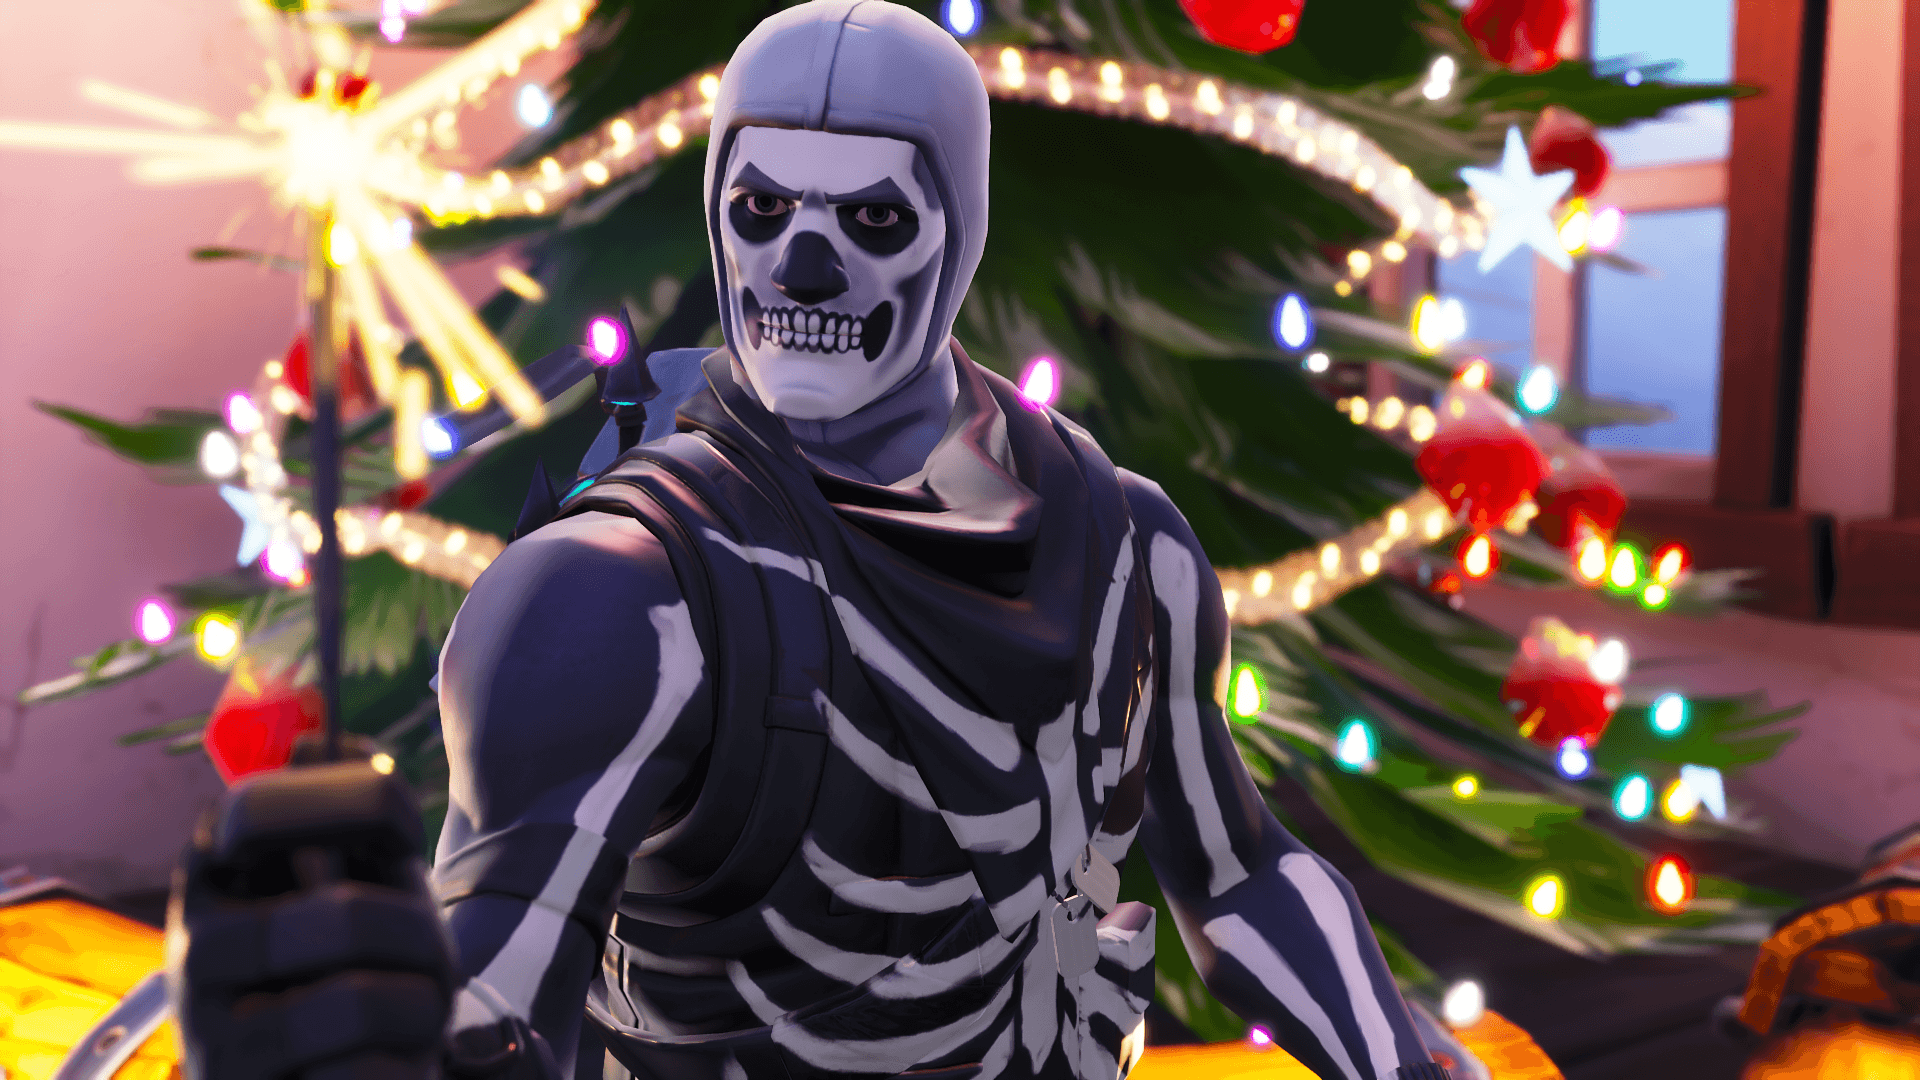 Ml Wallpaper Fortnite Skull Trooper Skin 1688826 Hd Wallpaper Backgrounds Download